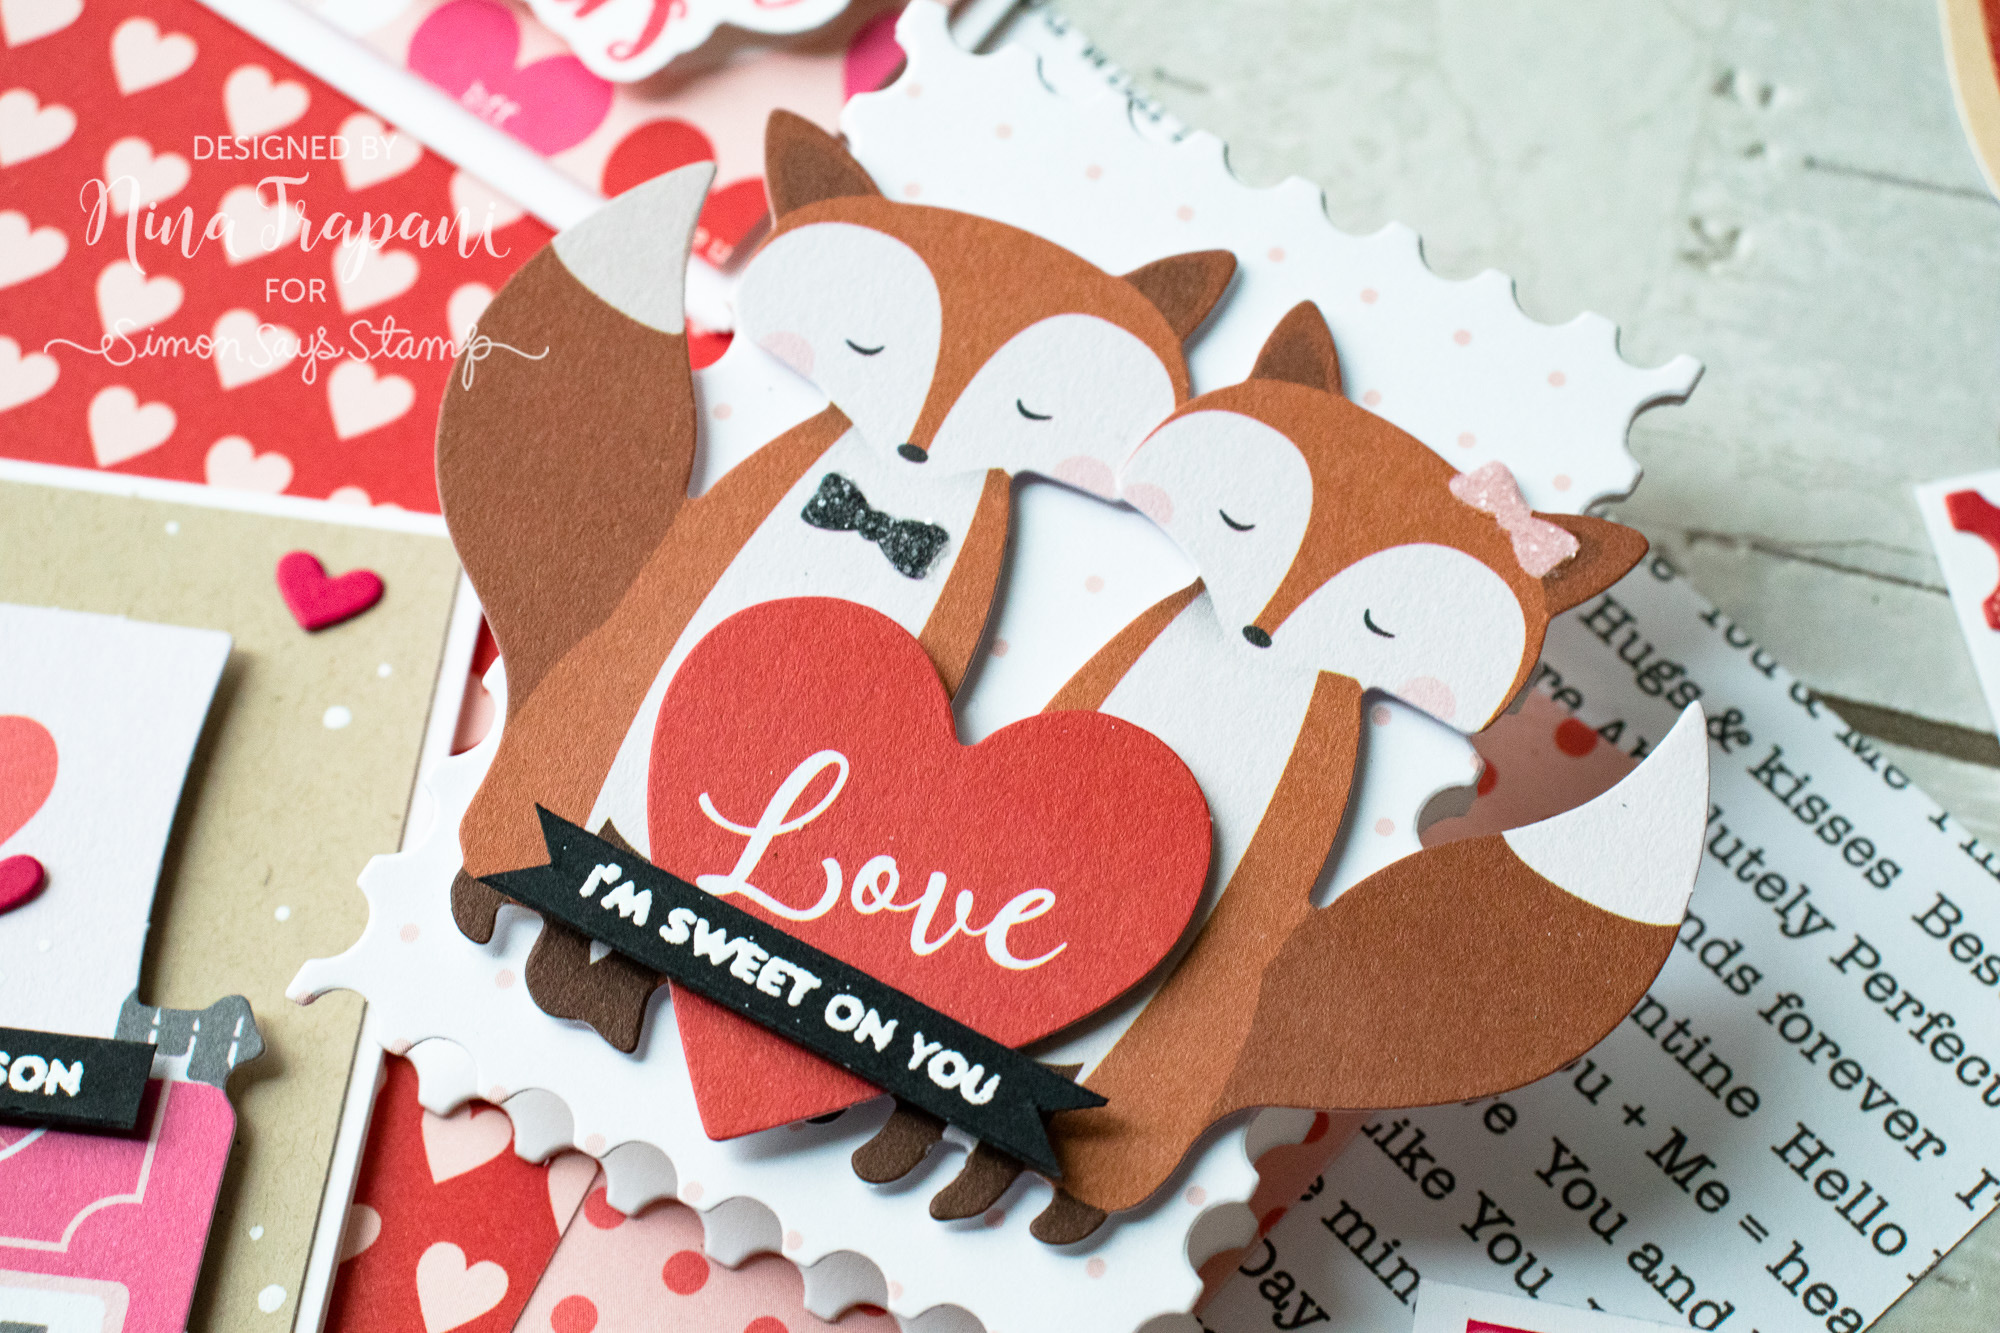 Mini Valentines with Simon's Limited Edition Valentine Kit